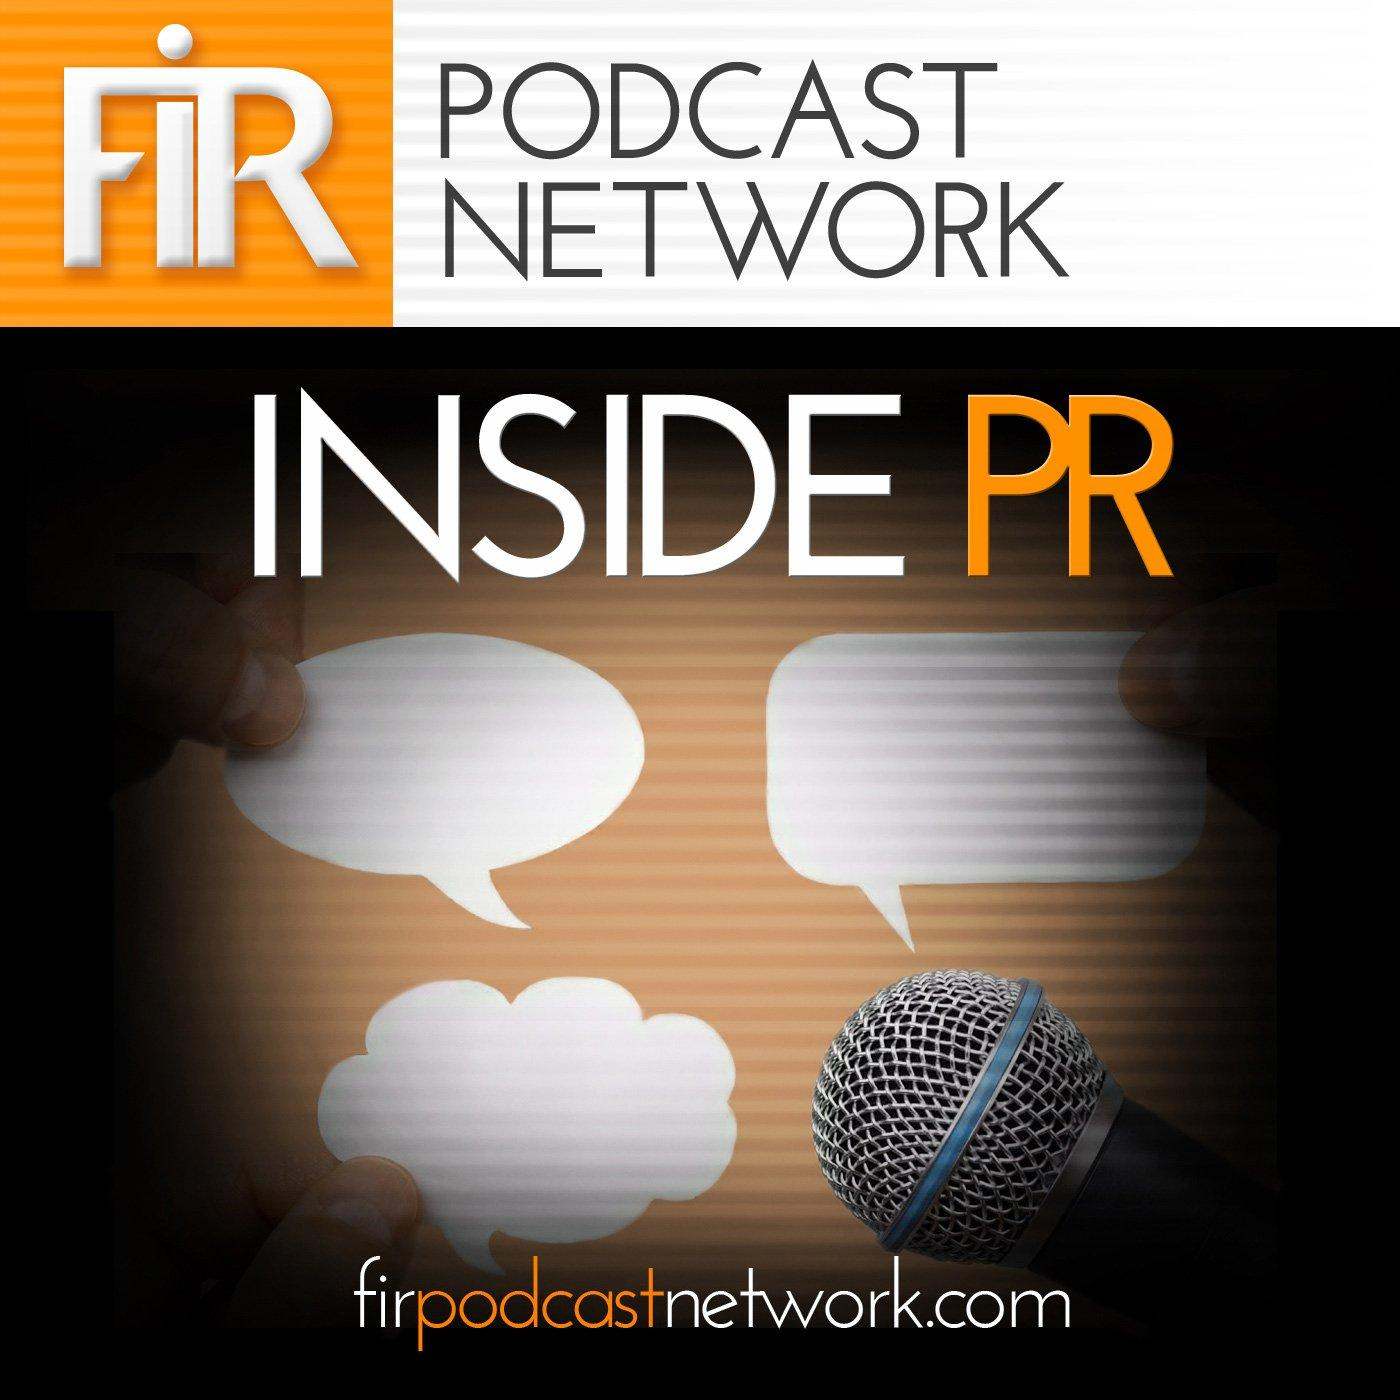 Inside PR 463: The Tyranny of Email